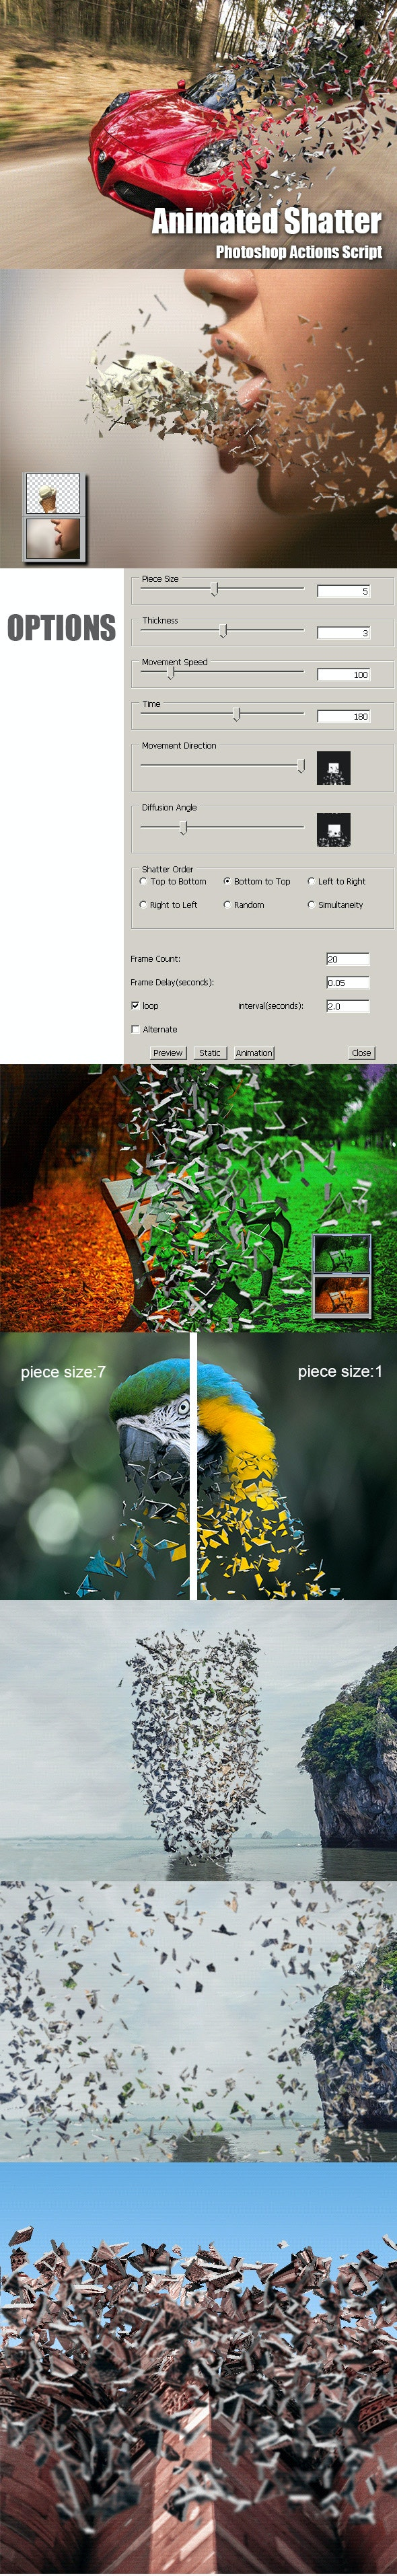 Animated Shatter Photoshop Add-on - Photo Effects Actions